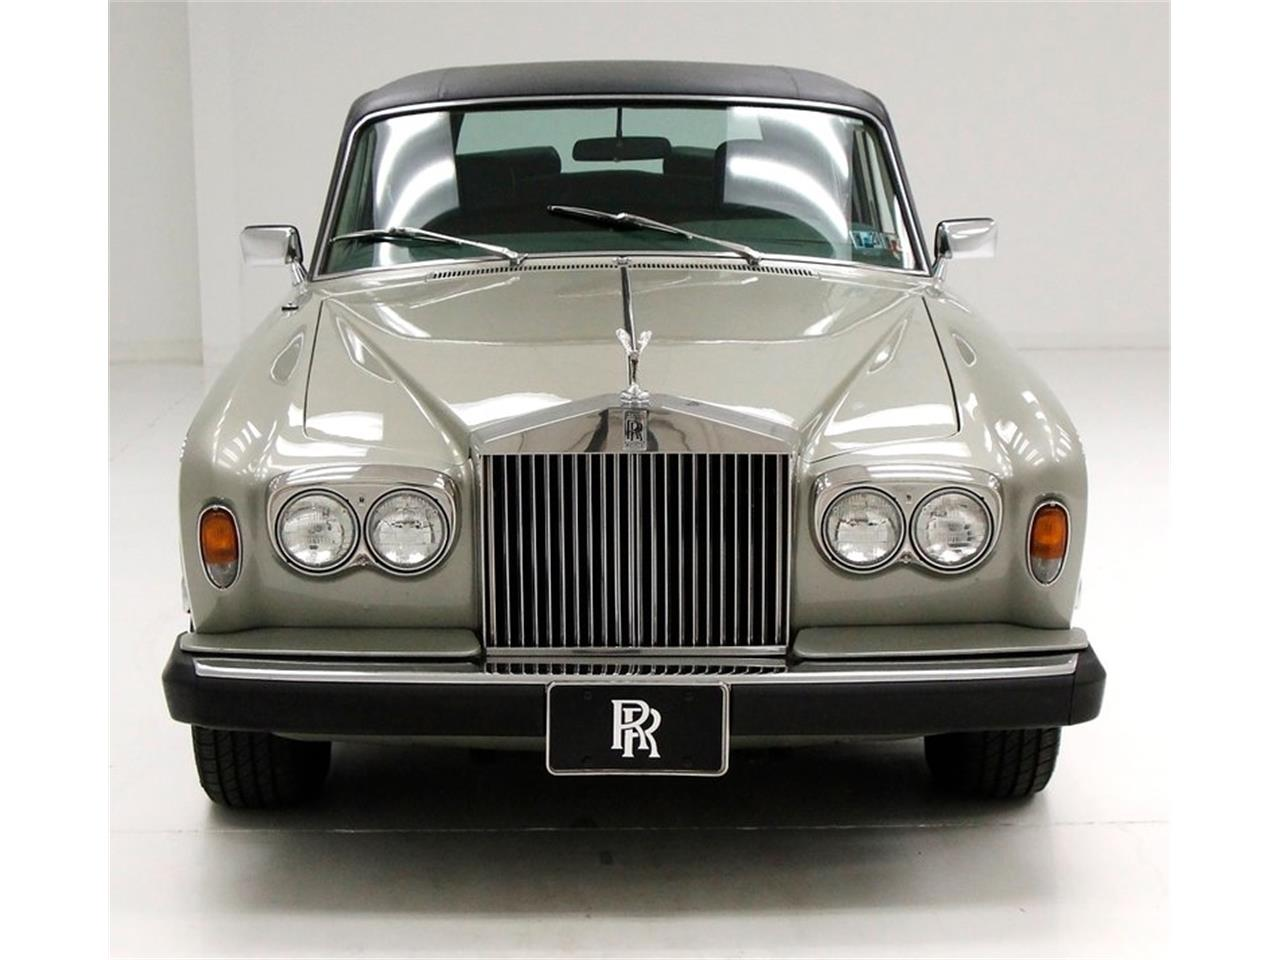 1980 Rolls-Royce Silver Wraith for sale in Morgantown, PA – photo 8